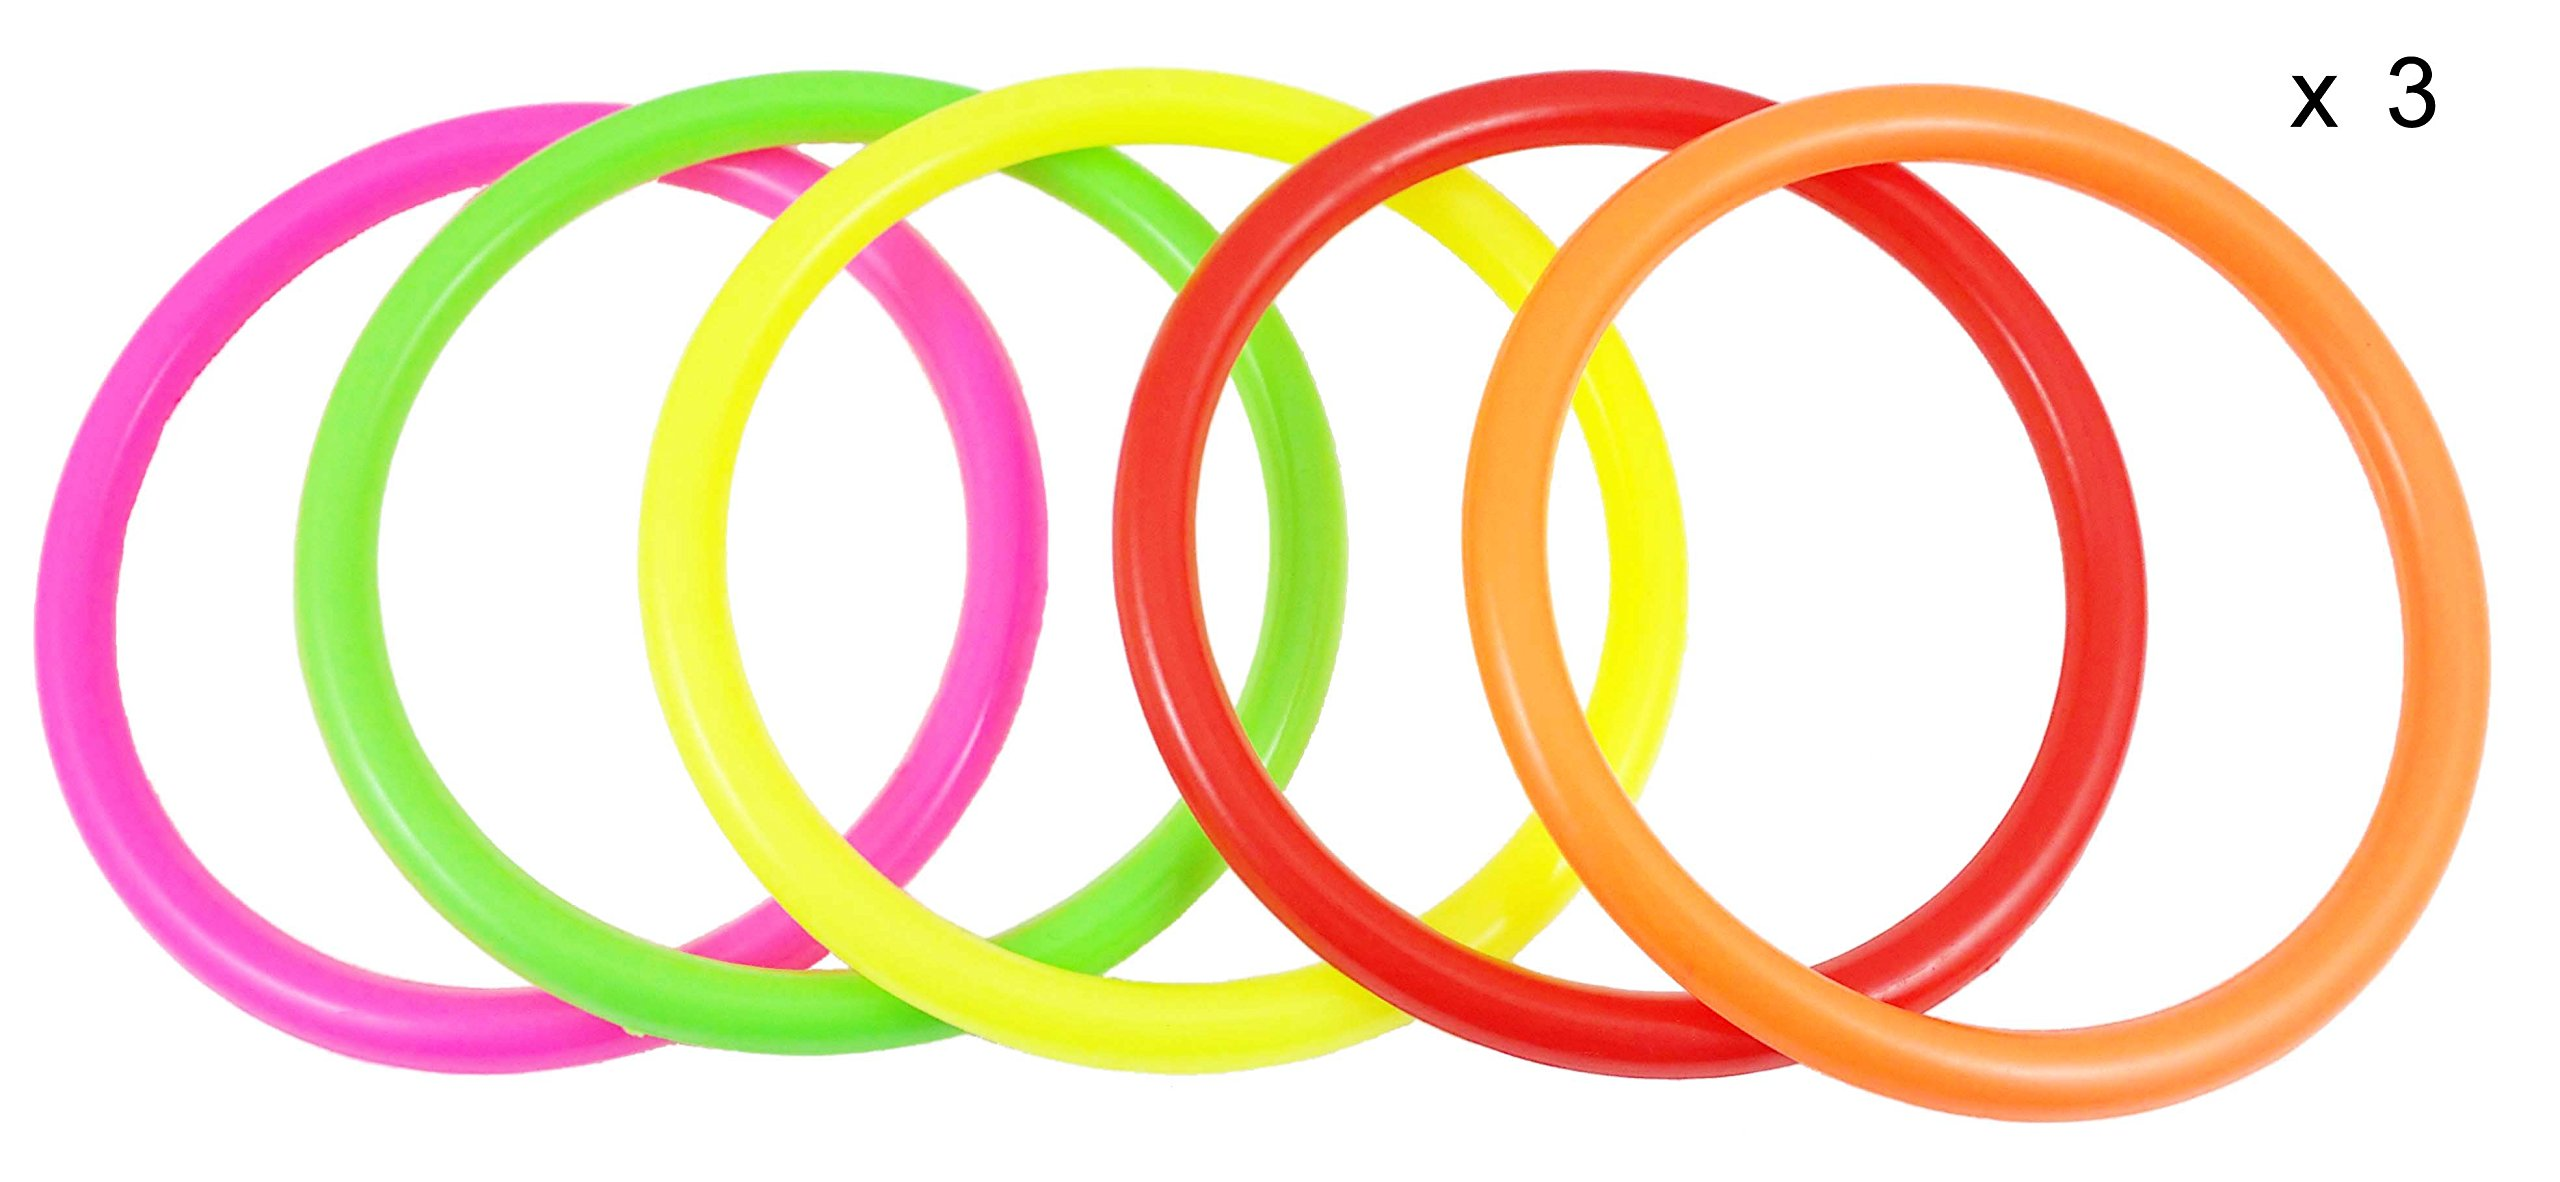 Fushing 15Pcs Multicolor Plastic Toss Rings for Kids Ring Toss Game, Speed and Agility Training Games,Carnival Garden Backyard Outdoor Games,Bridal Shower Game,Game Booth (3.35'') by Fushing